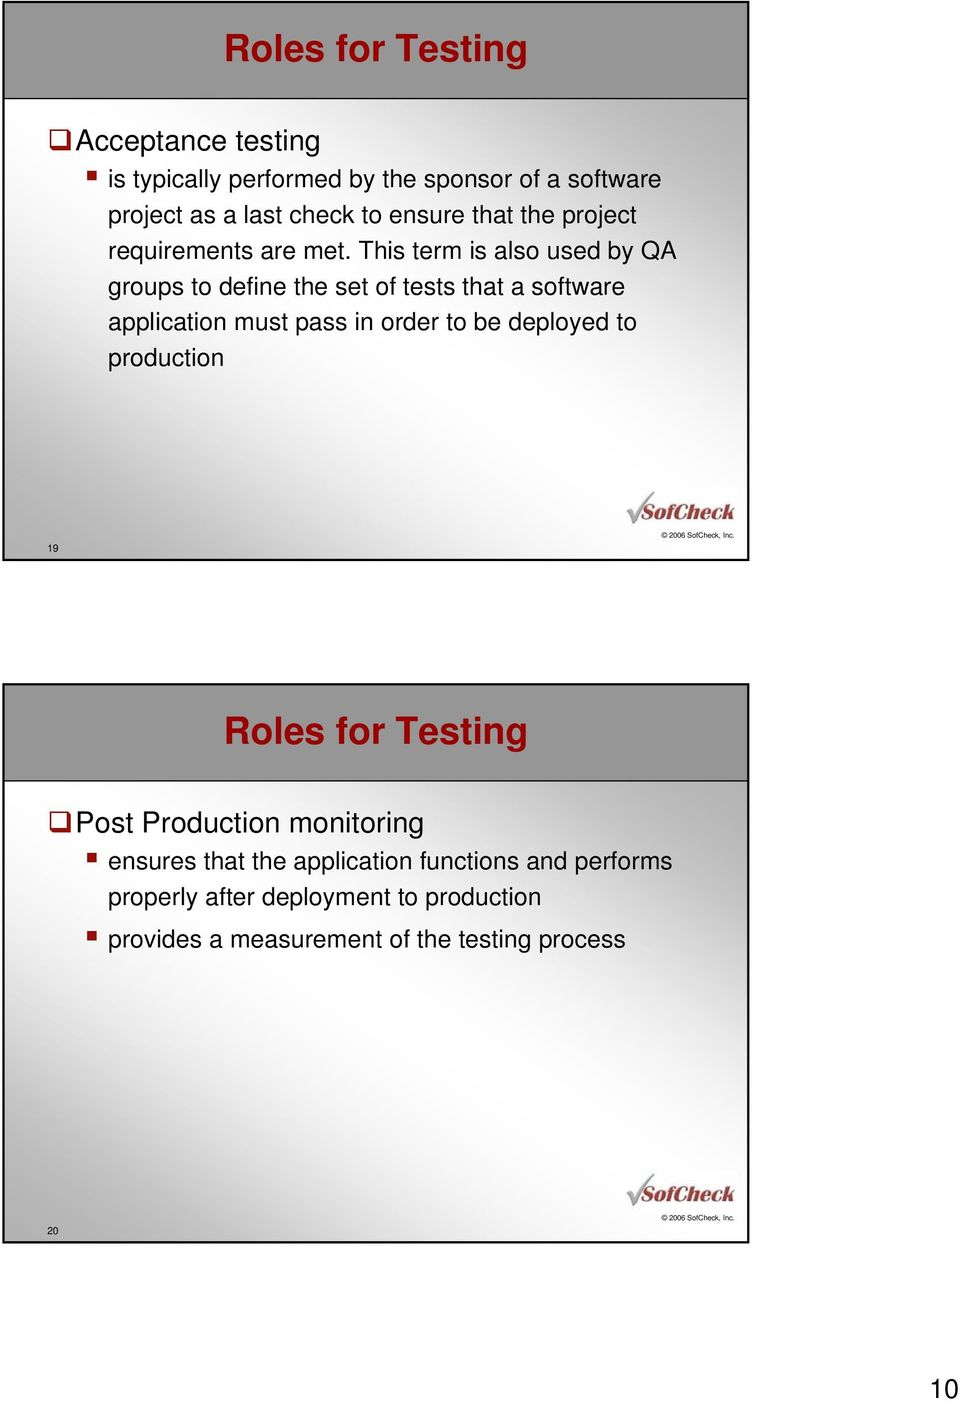 This term is also used by QA groups to define the set of tests that a software application must pass in order to be